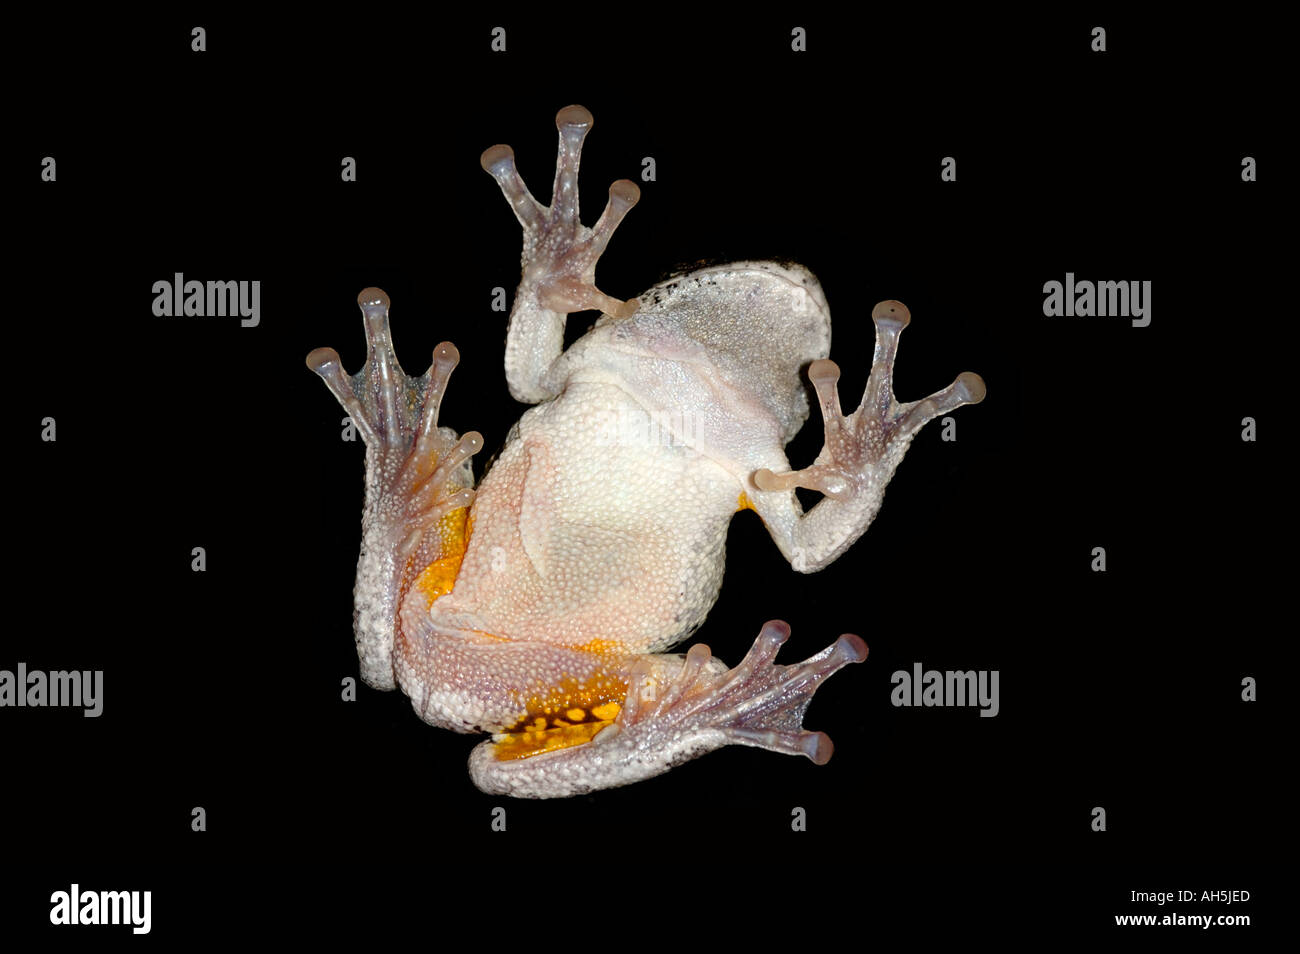 Underside of a Northern Gray Treefrog tree frog Hyla versicolor perched on a window northern New Jersey - Stock Image